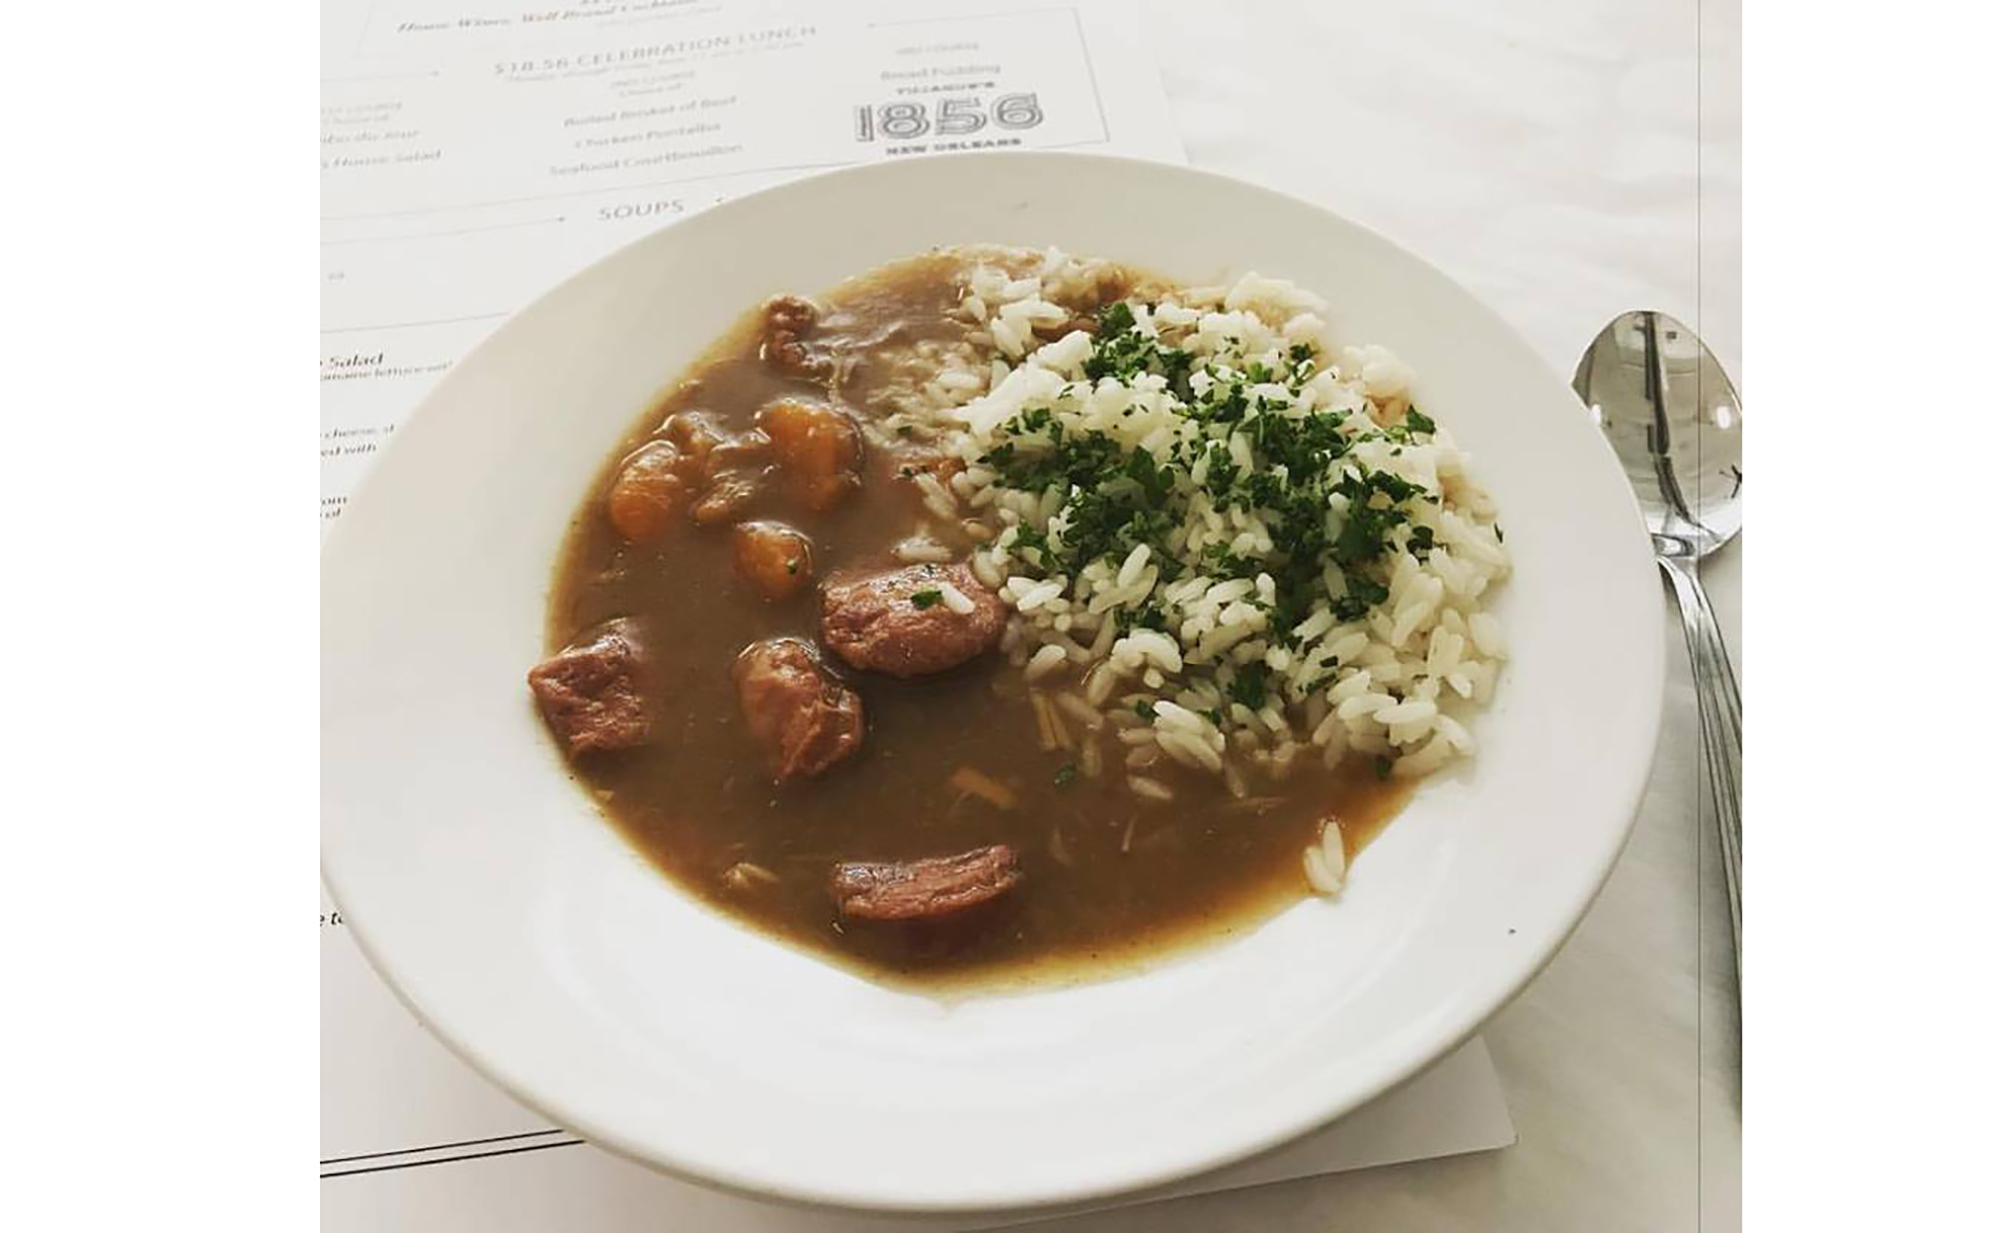 Gumbo at Tujague's